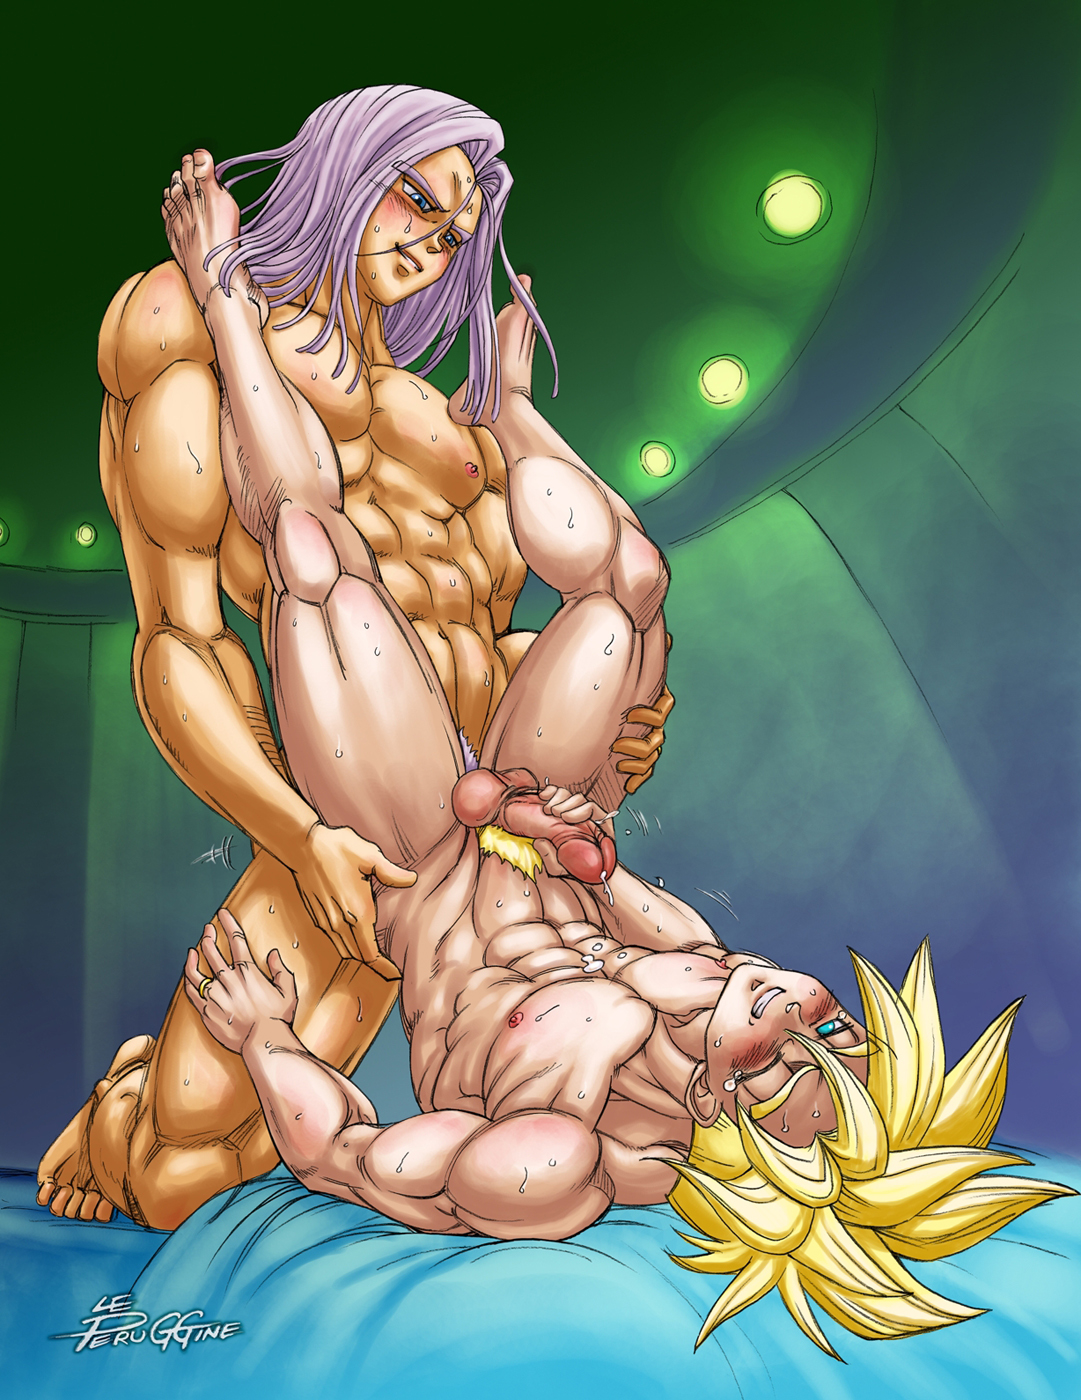 Dragon Ball Z Porno Media Gay Original Kai Kamasutra Stem